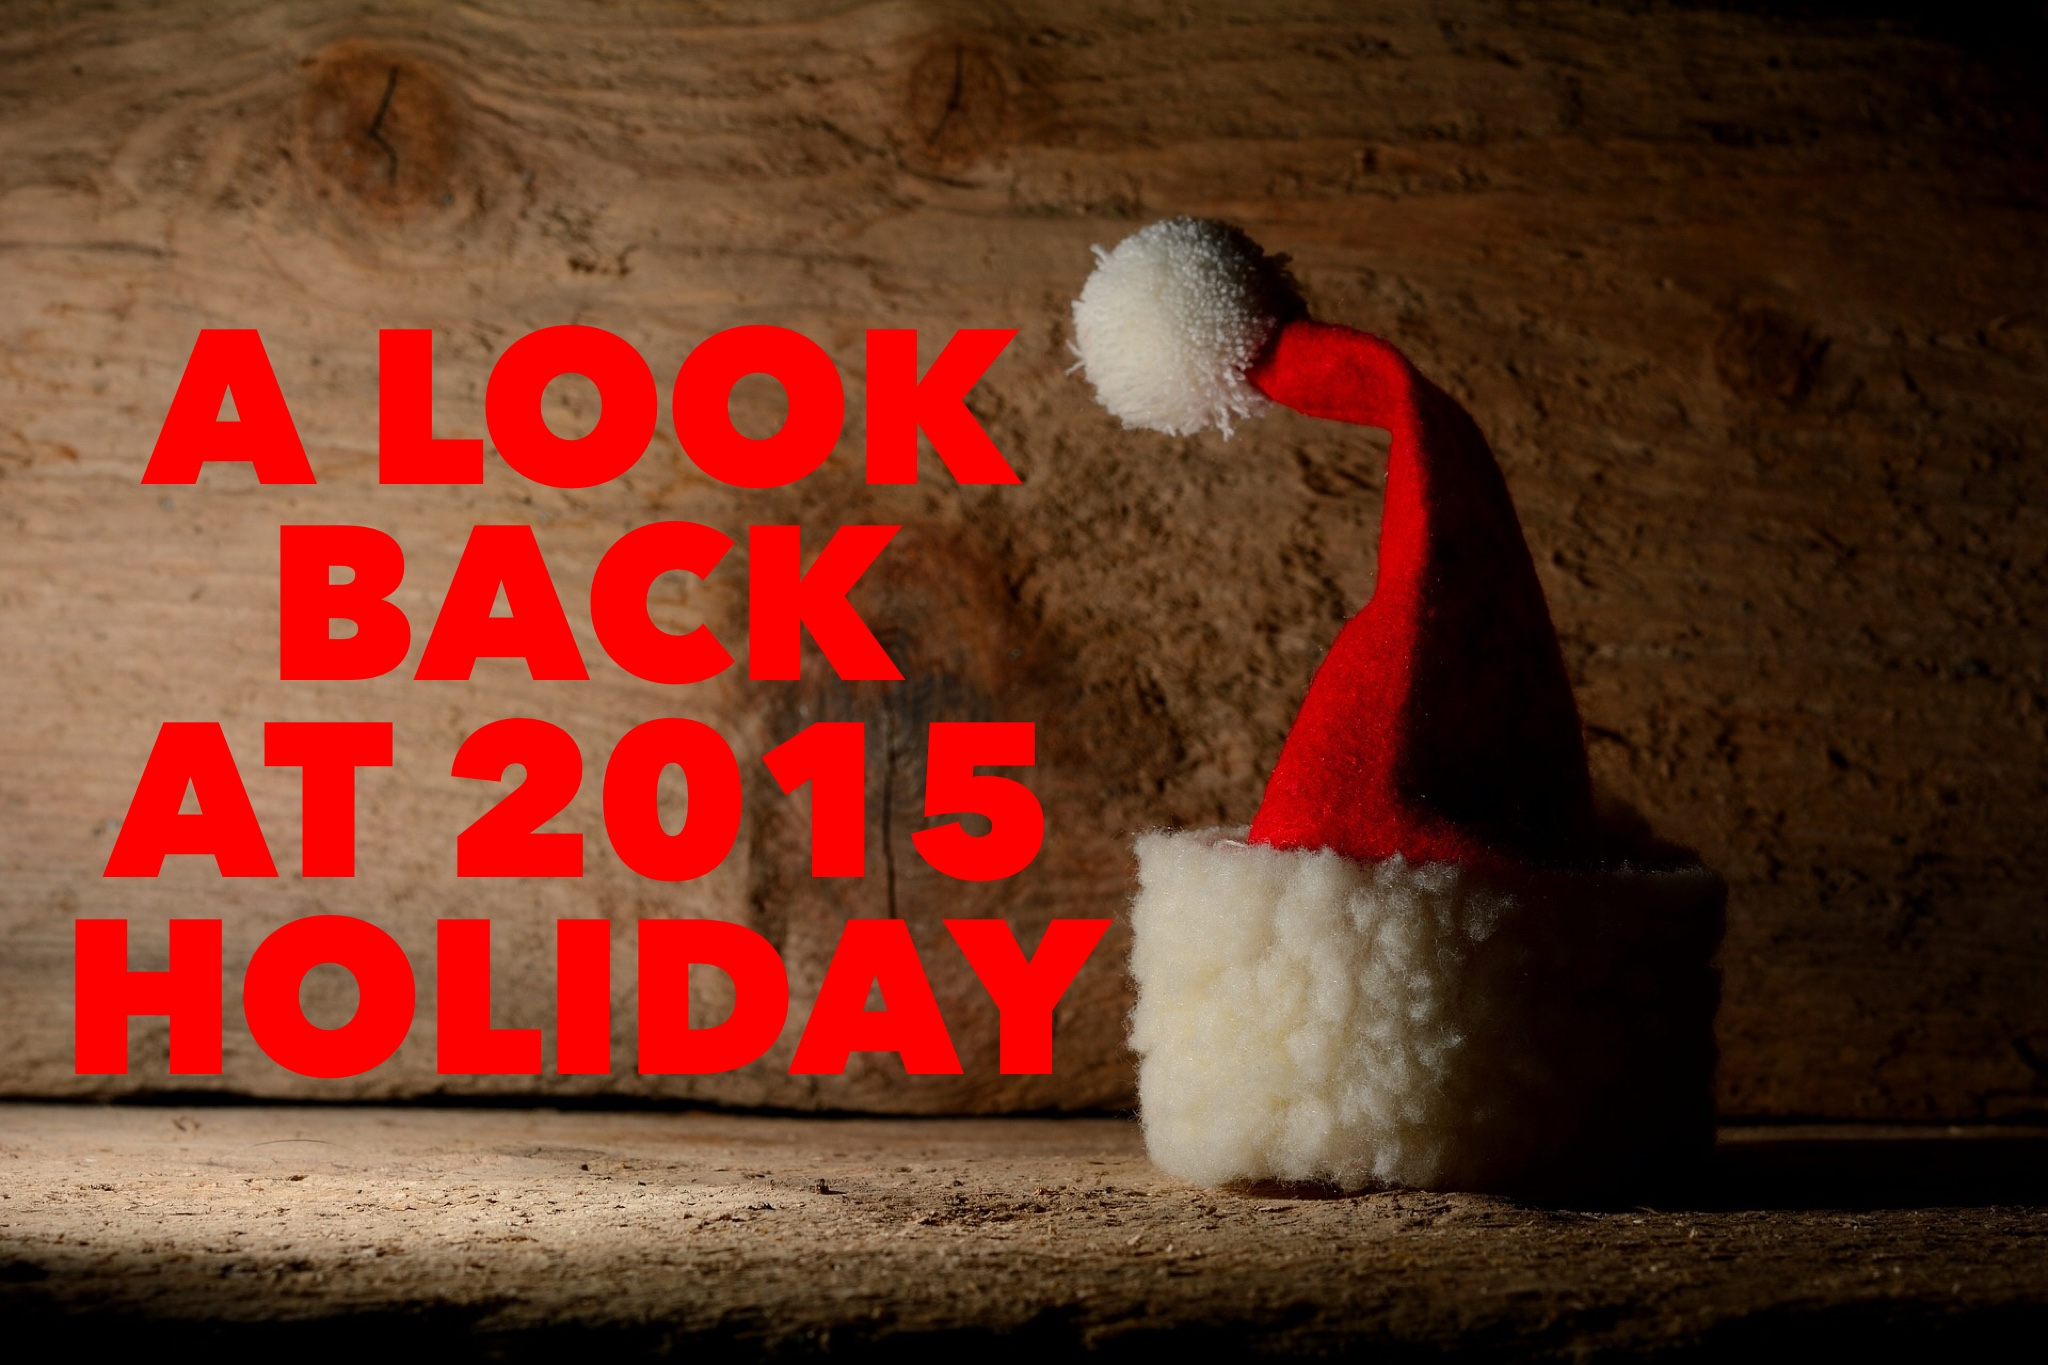 A look back at 2015 holiday through the lens of digital commerce trends and takeaways